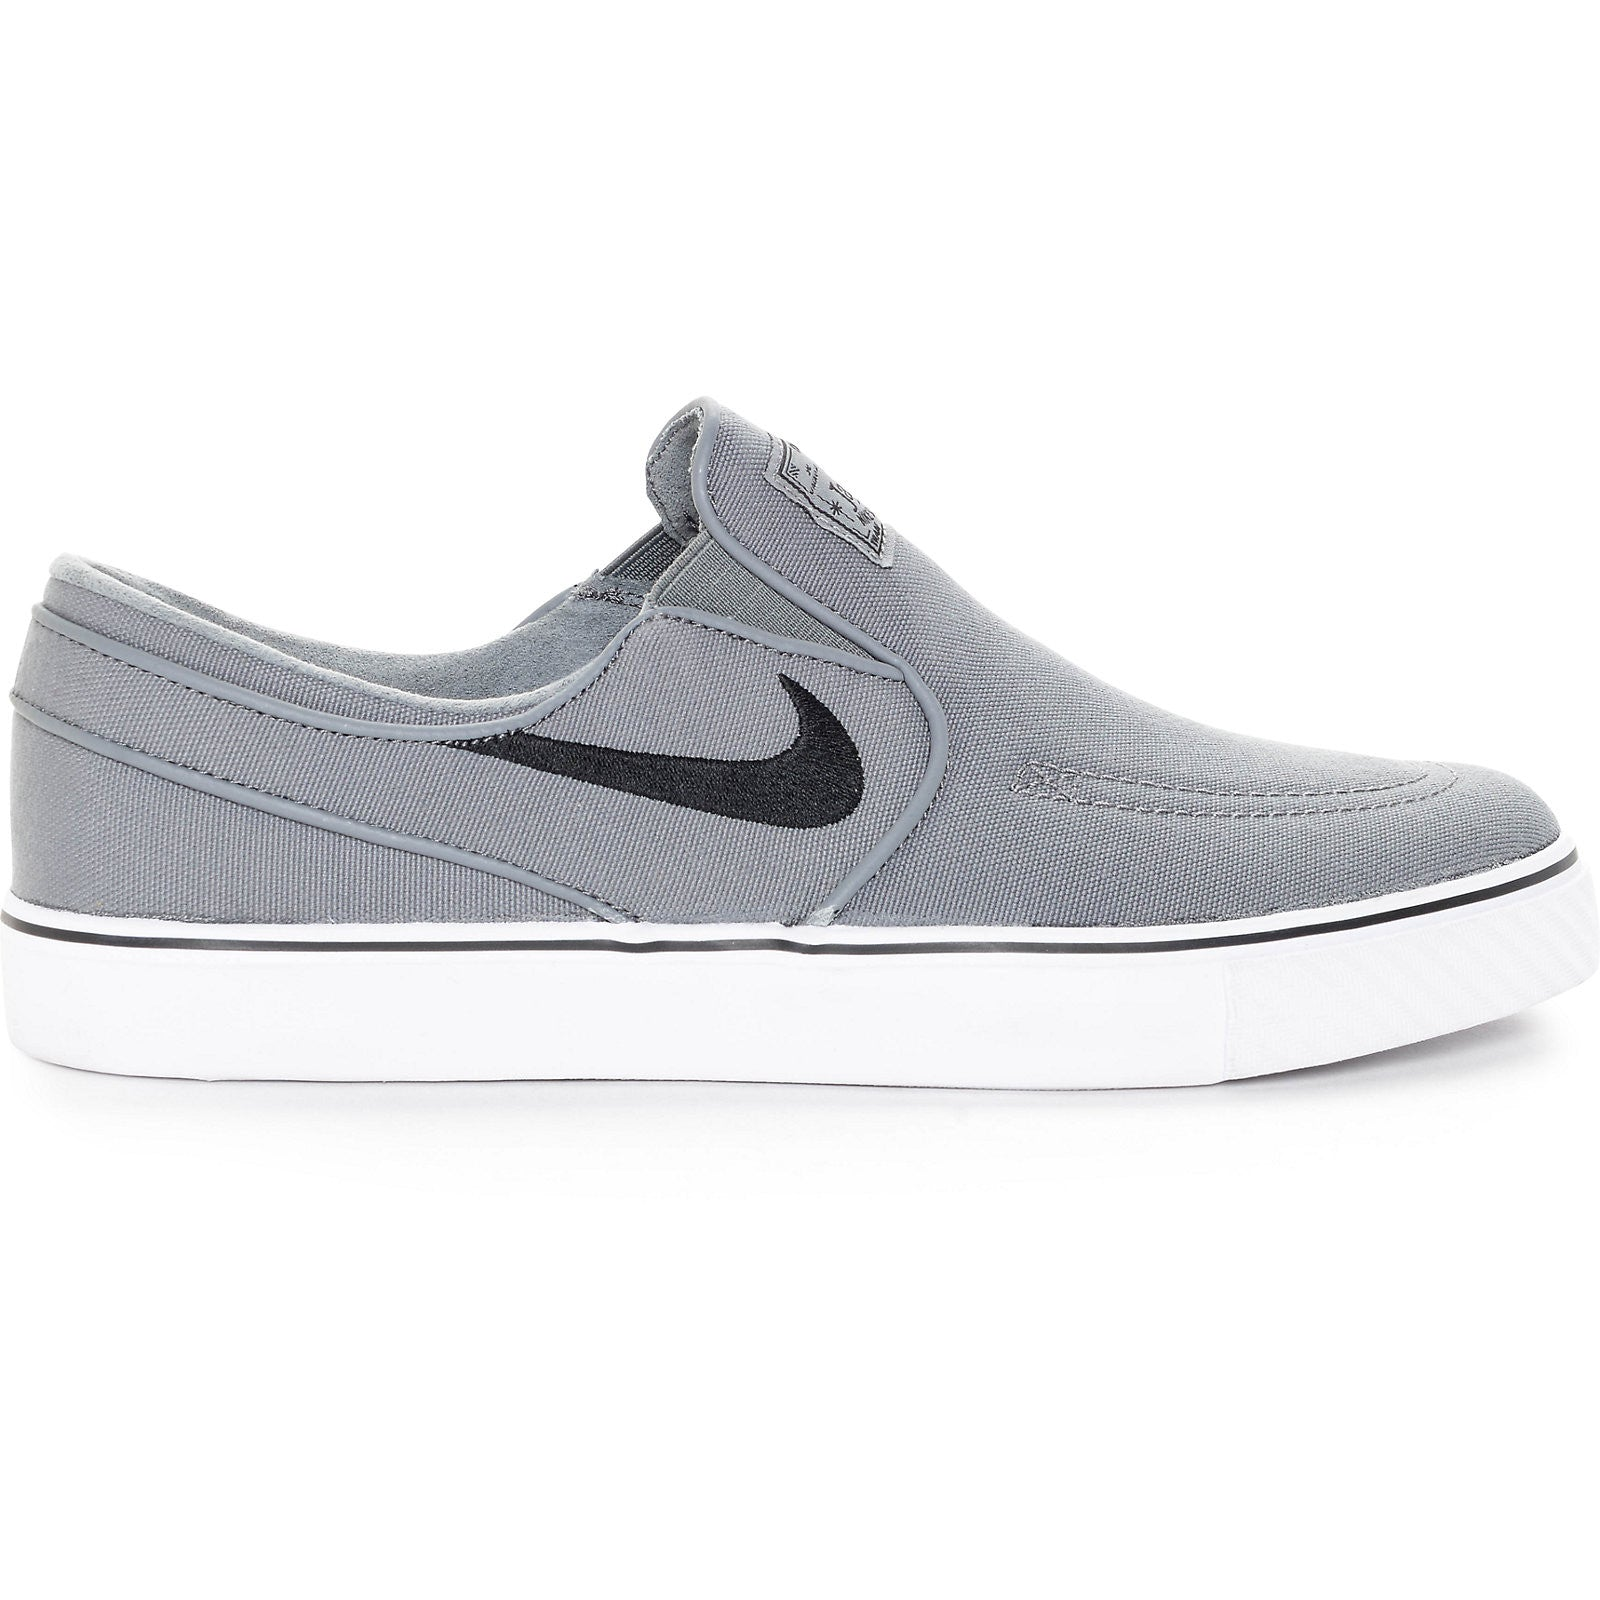 af1fcec707a Nike SB Janoski Slip-On - Cool Grey Black White - New Star